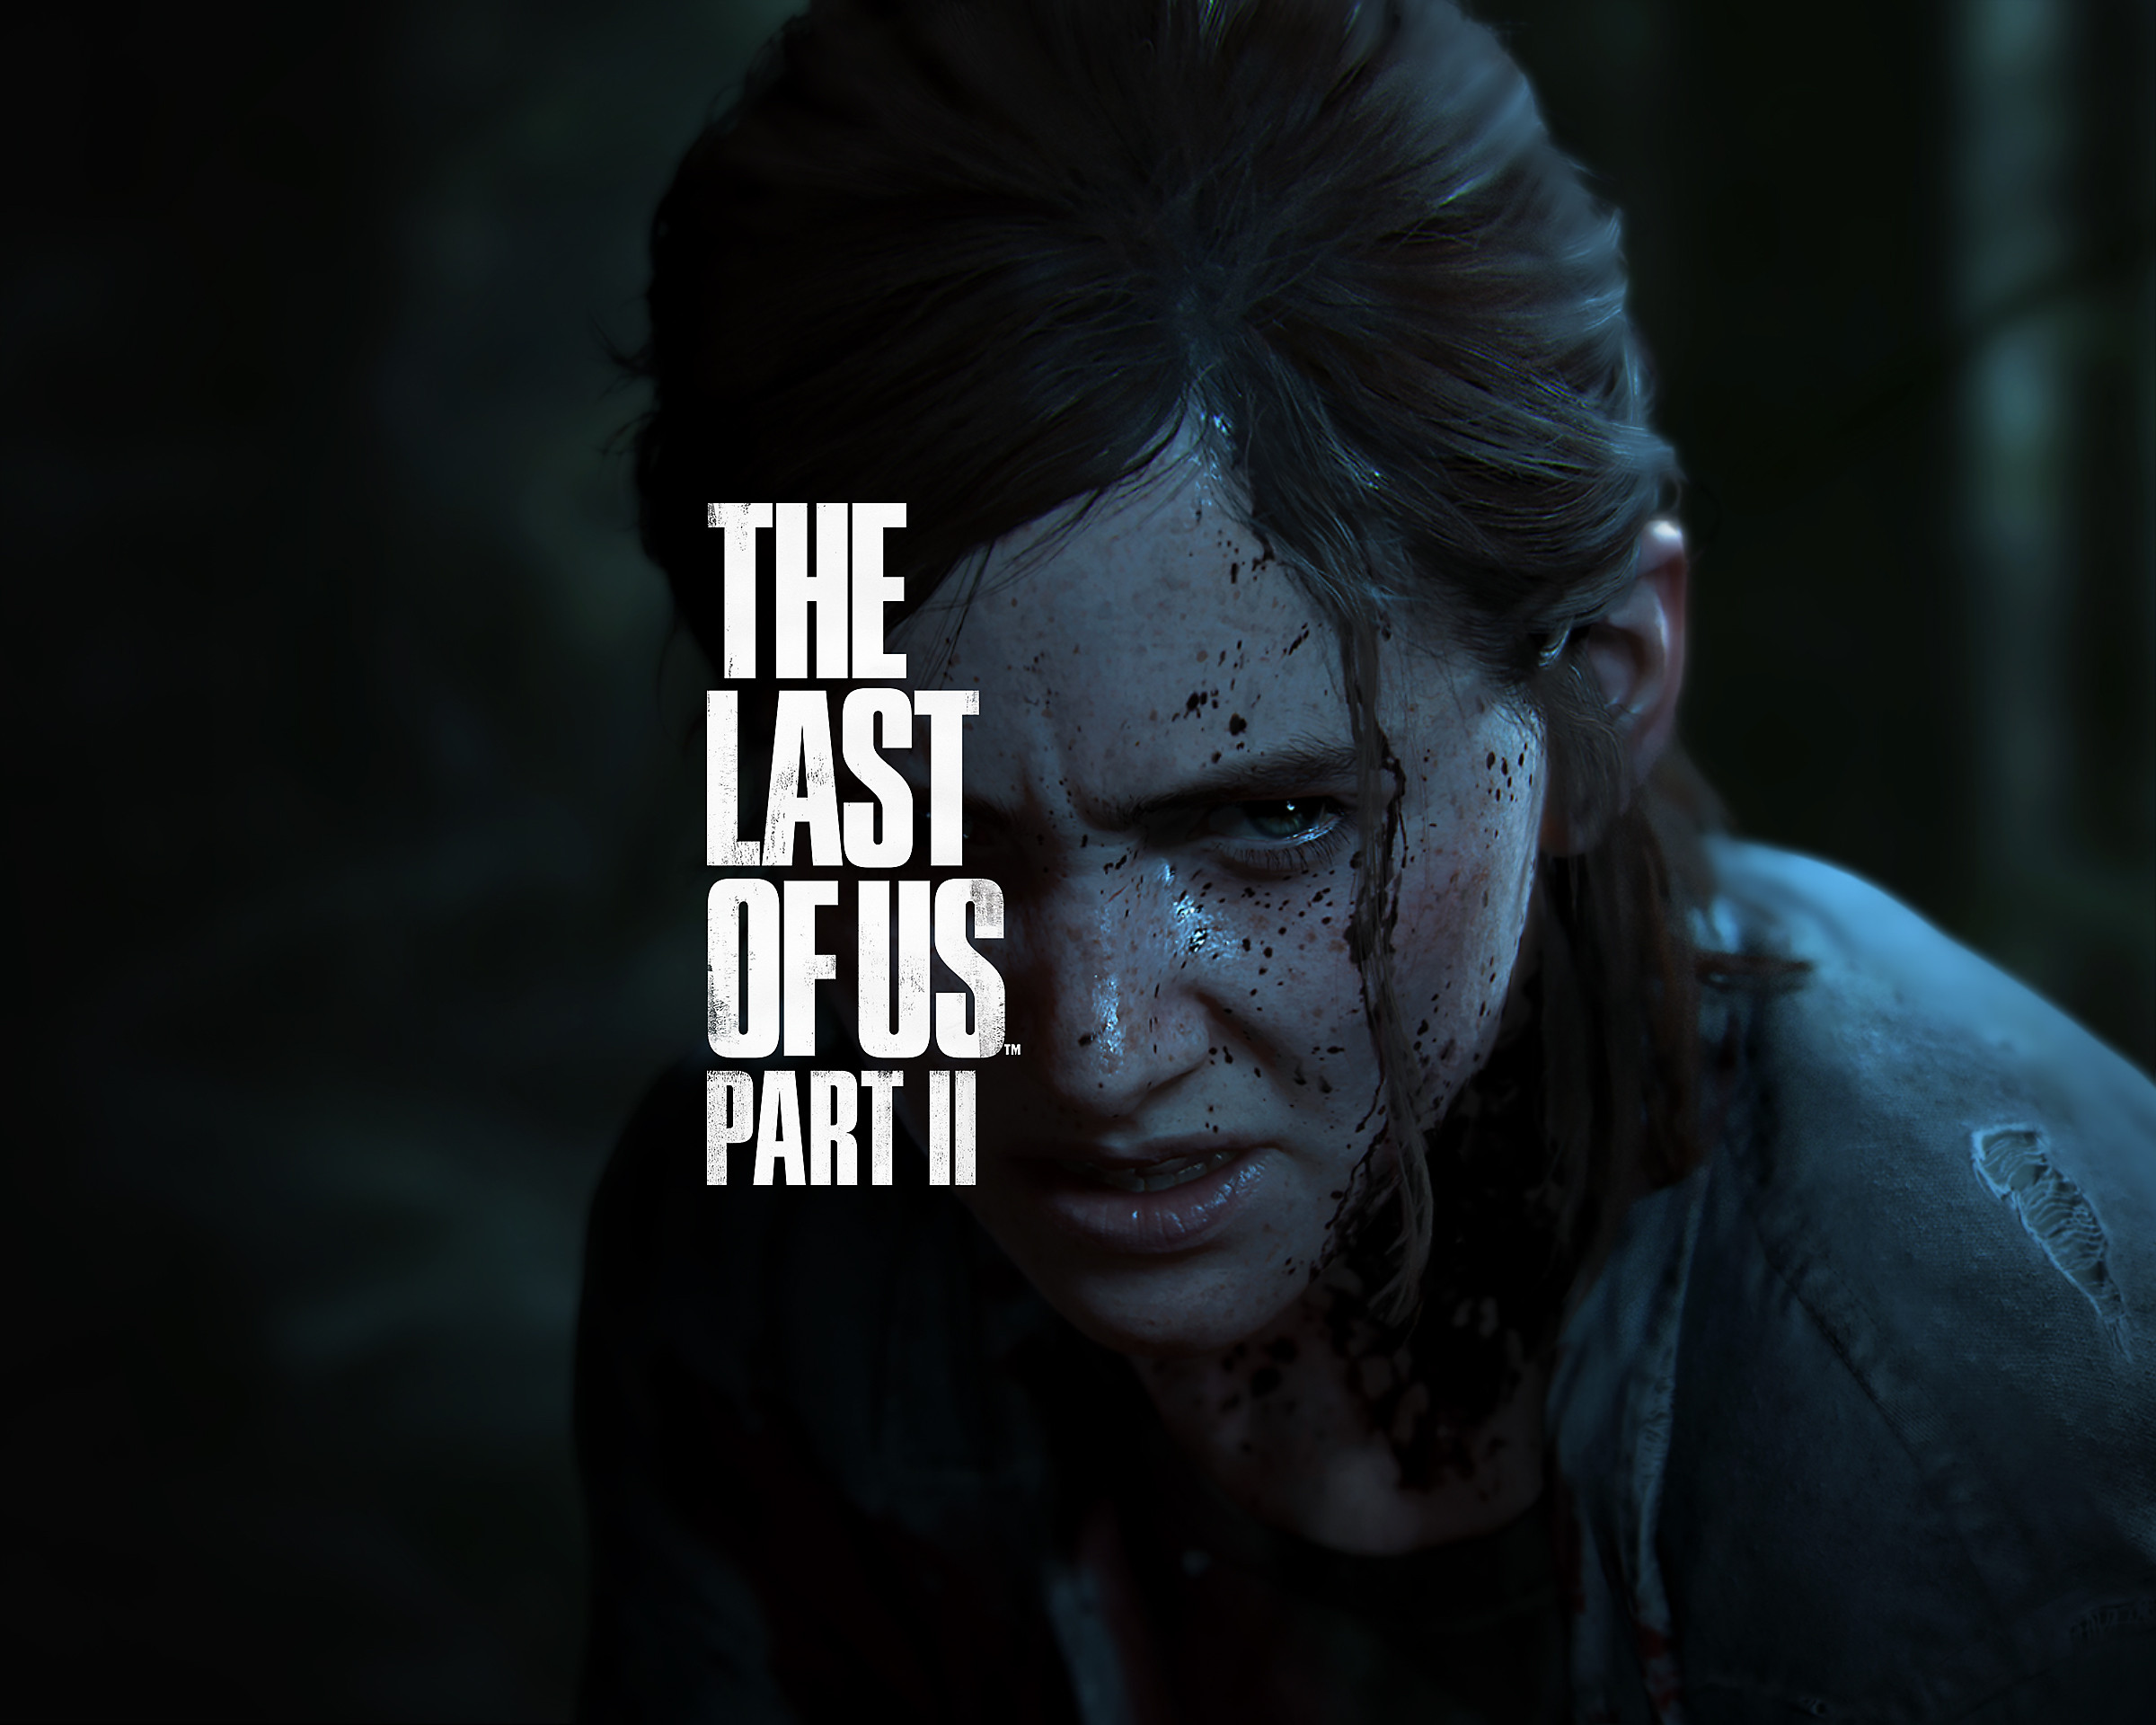 The Last of Us Part II Decorative Background